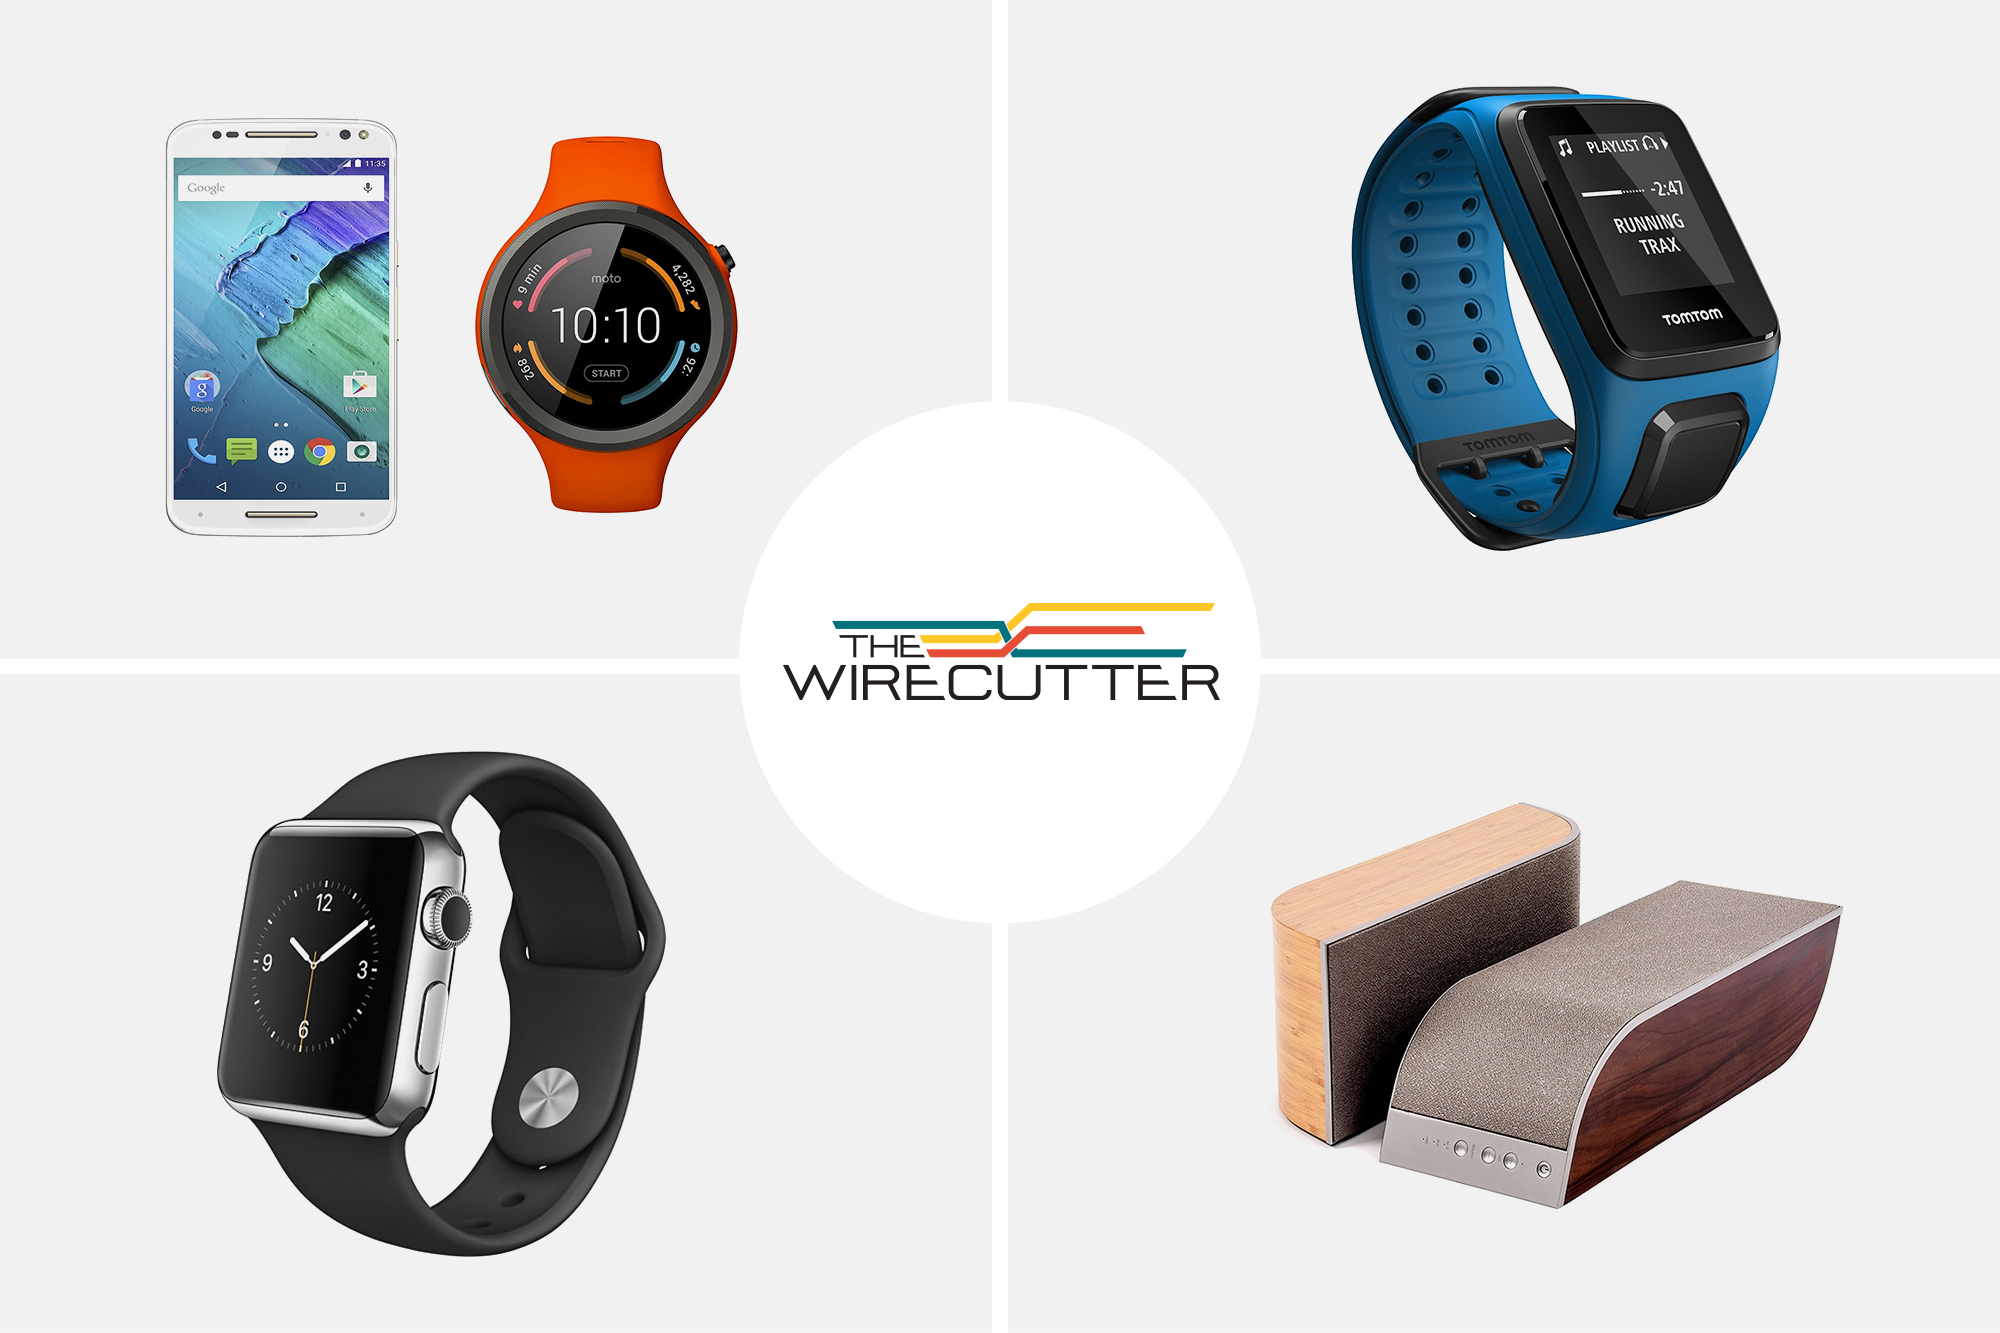 The Wirecutter's best deals: Save $300 on a Moto X / Moto 360 combo